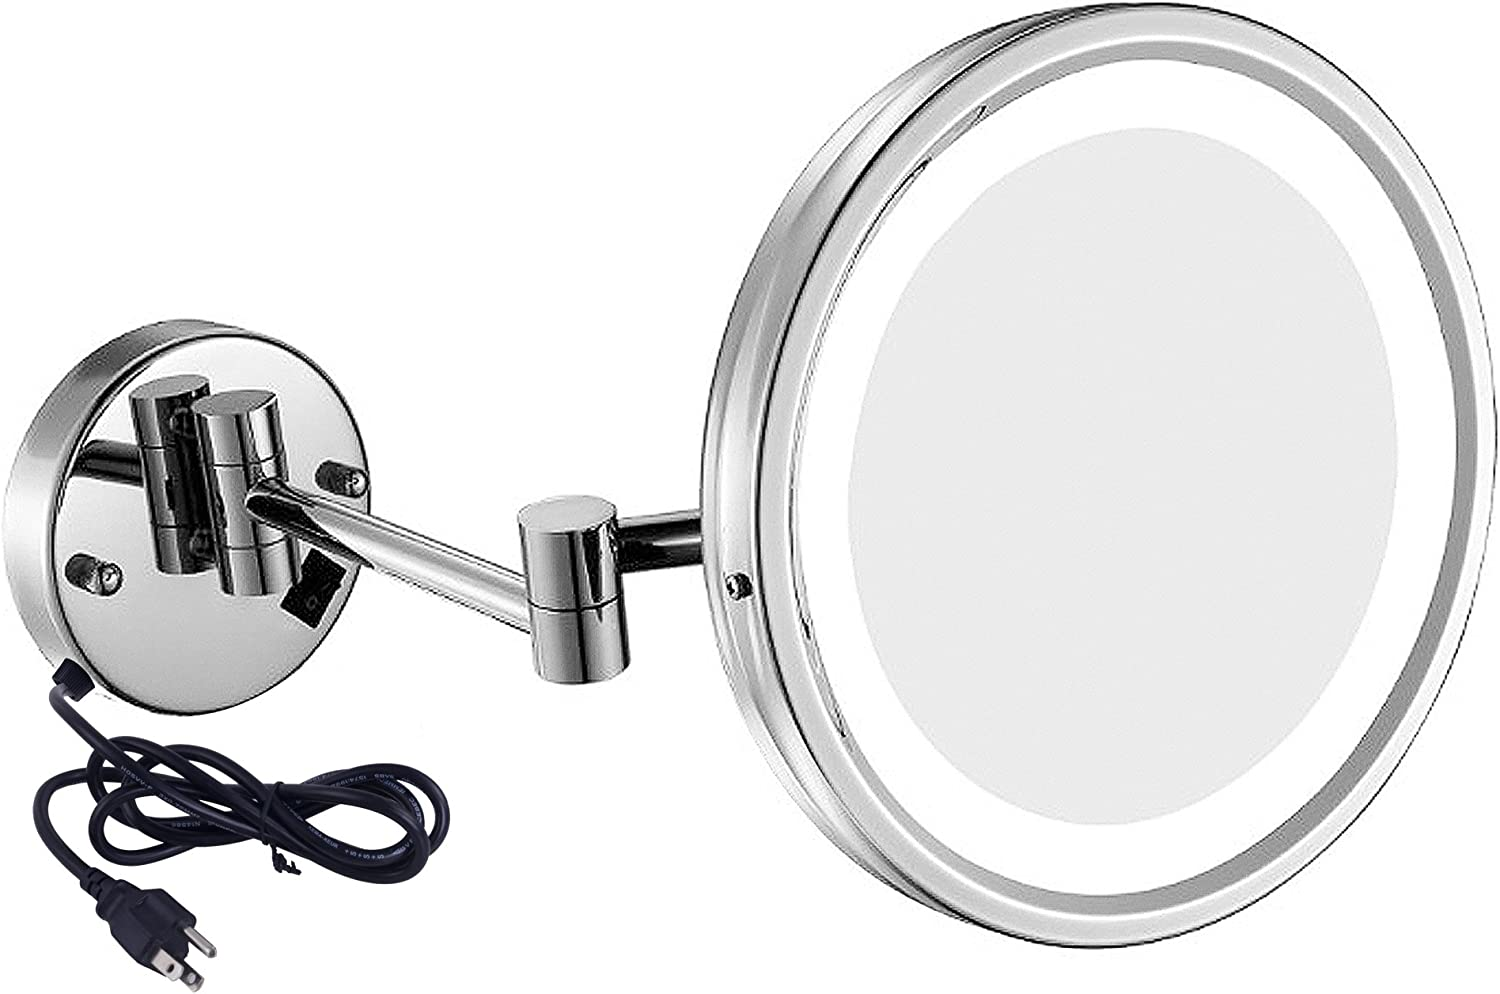 GURUN LED Lighted Wall Mount Mirror 8.5-Inch with 7X Magnification, Chrome Finish with Plug M1807D(8.5in,7X)